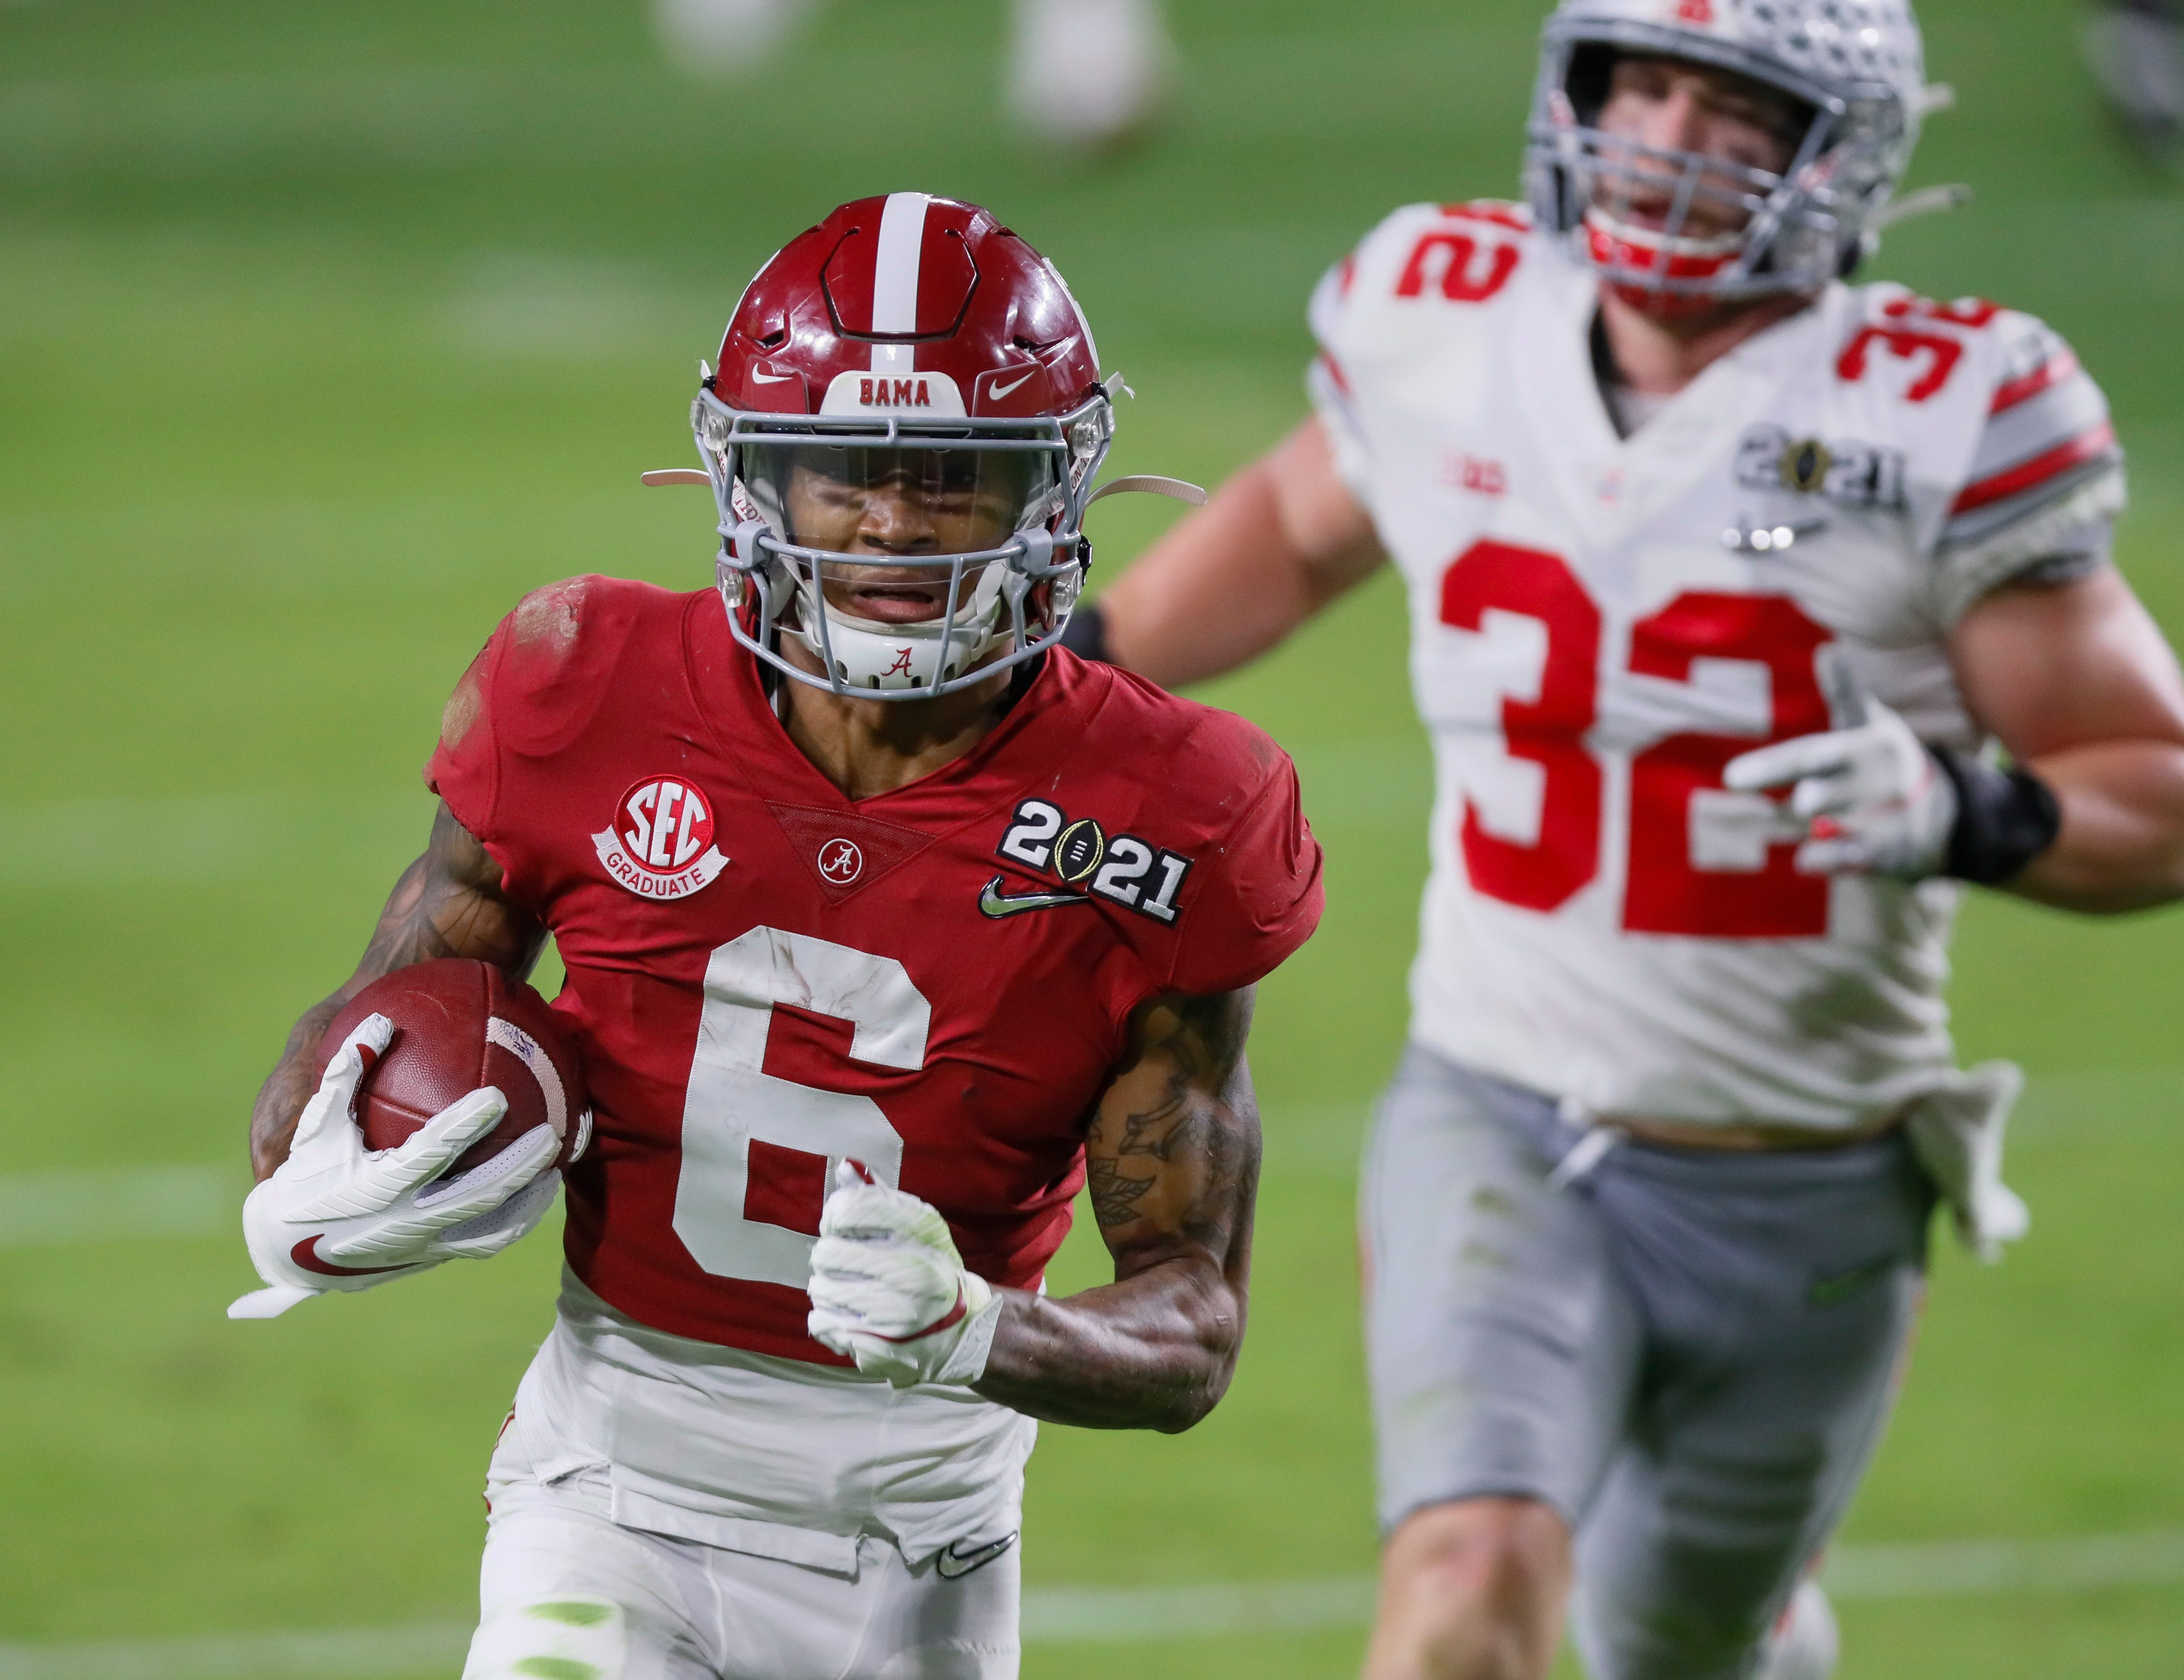 Alabama receiver DeVonta Smith catches a 42-yard touchdown behind Ohio State linebacker Tuf Borland during the second quarter of the College Football Playoff National Championship Game, Jan. 11, 2021 in Miami Gardens, Fla. Ncaa Football Cfp National Championship Ohio State Vs Alabama